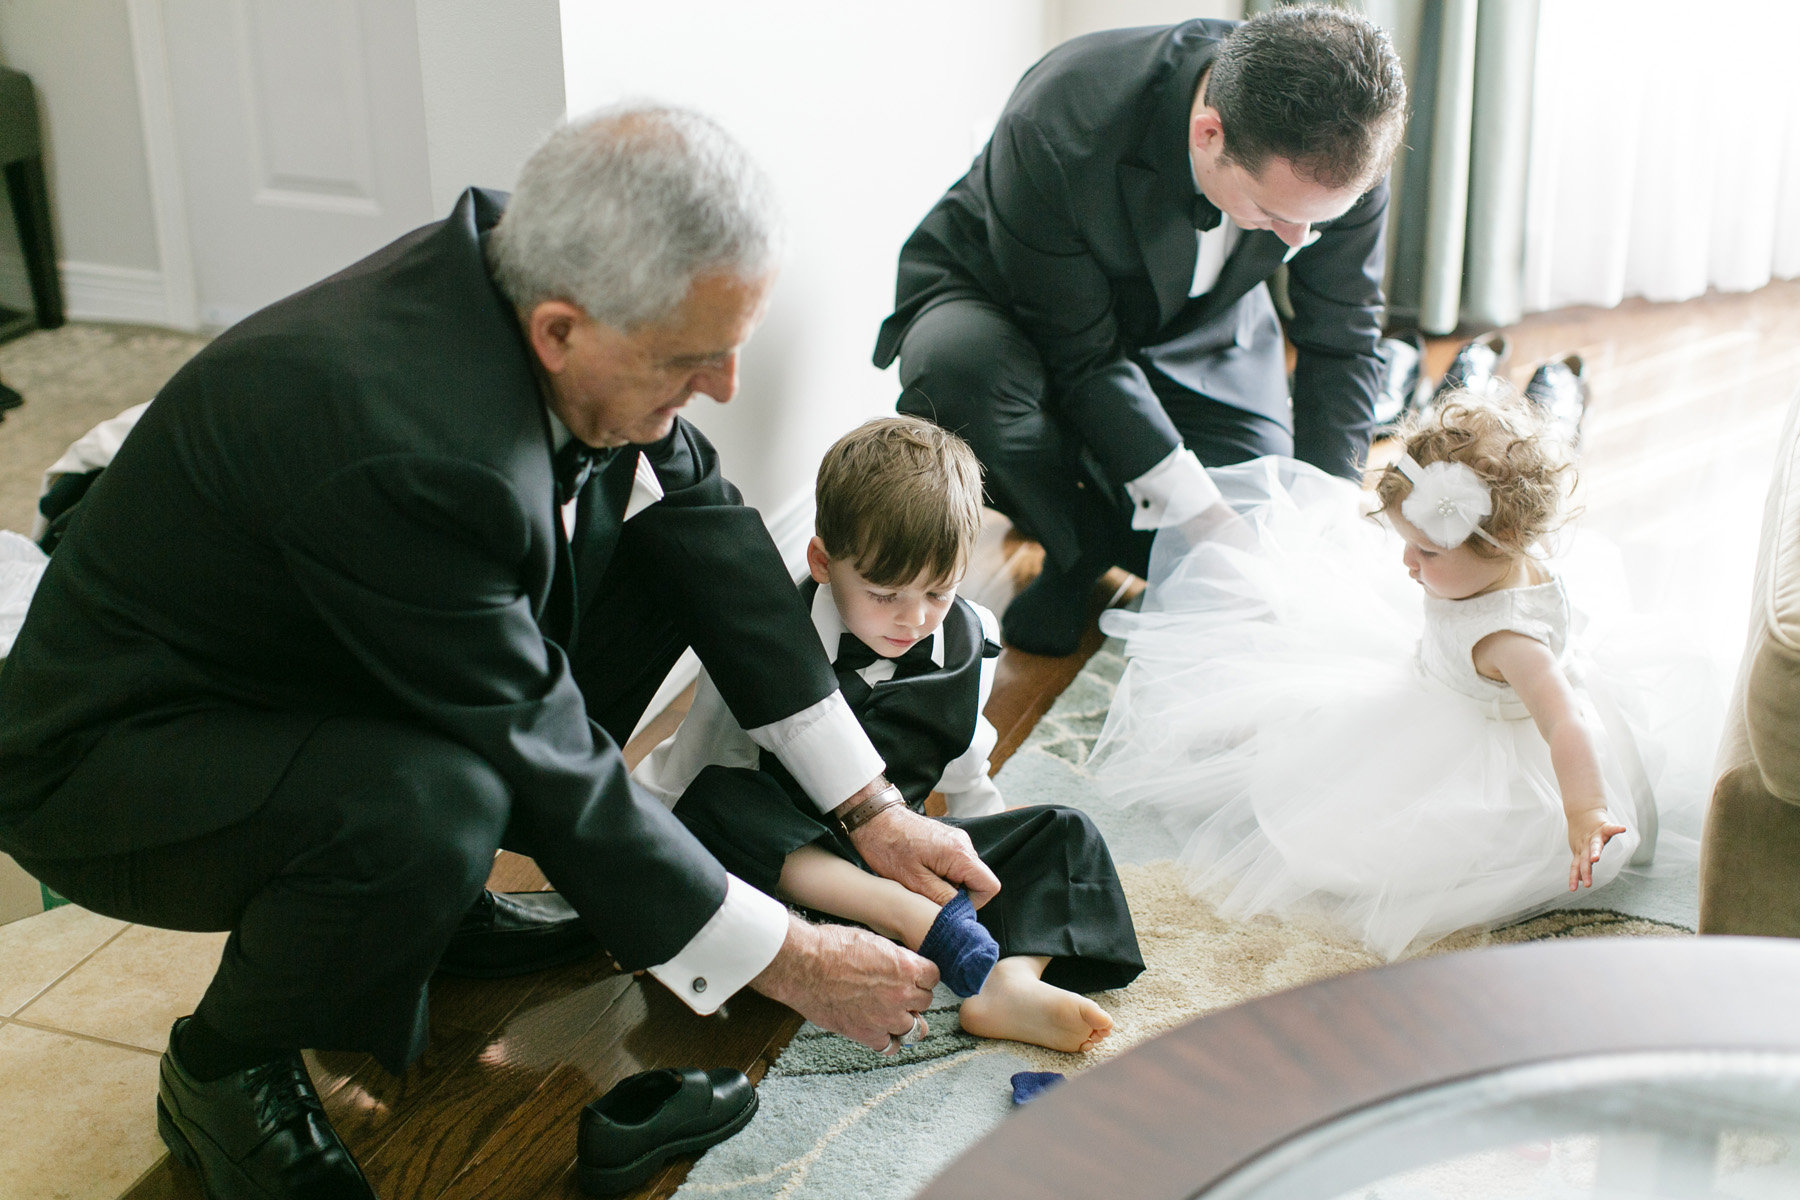 View More: http://joeewong.pass.us/christina_demetri_wedding